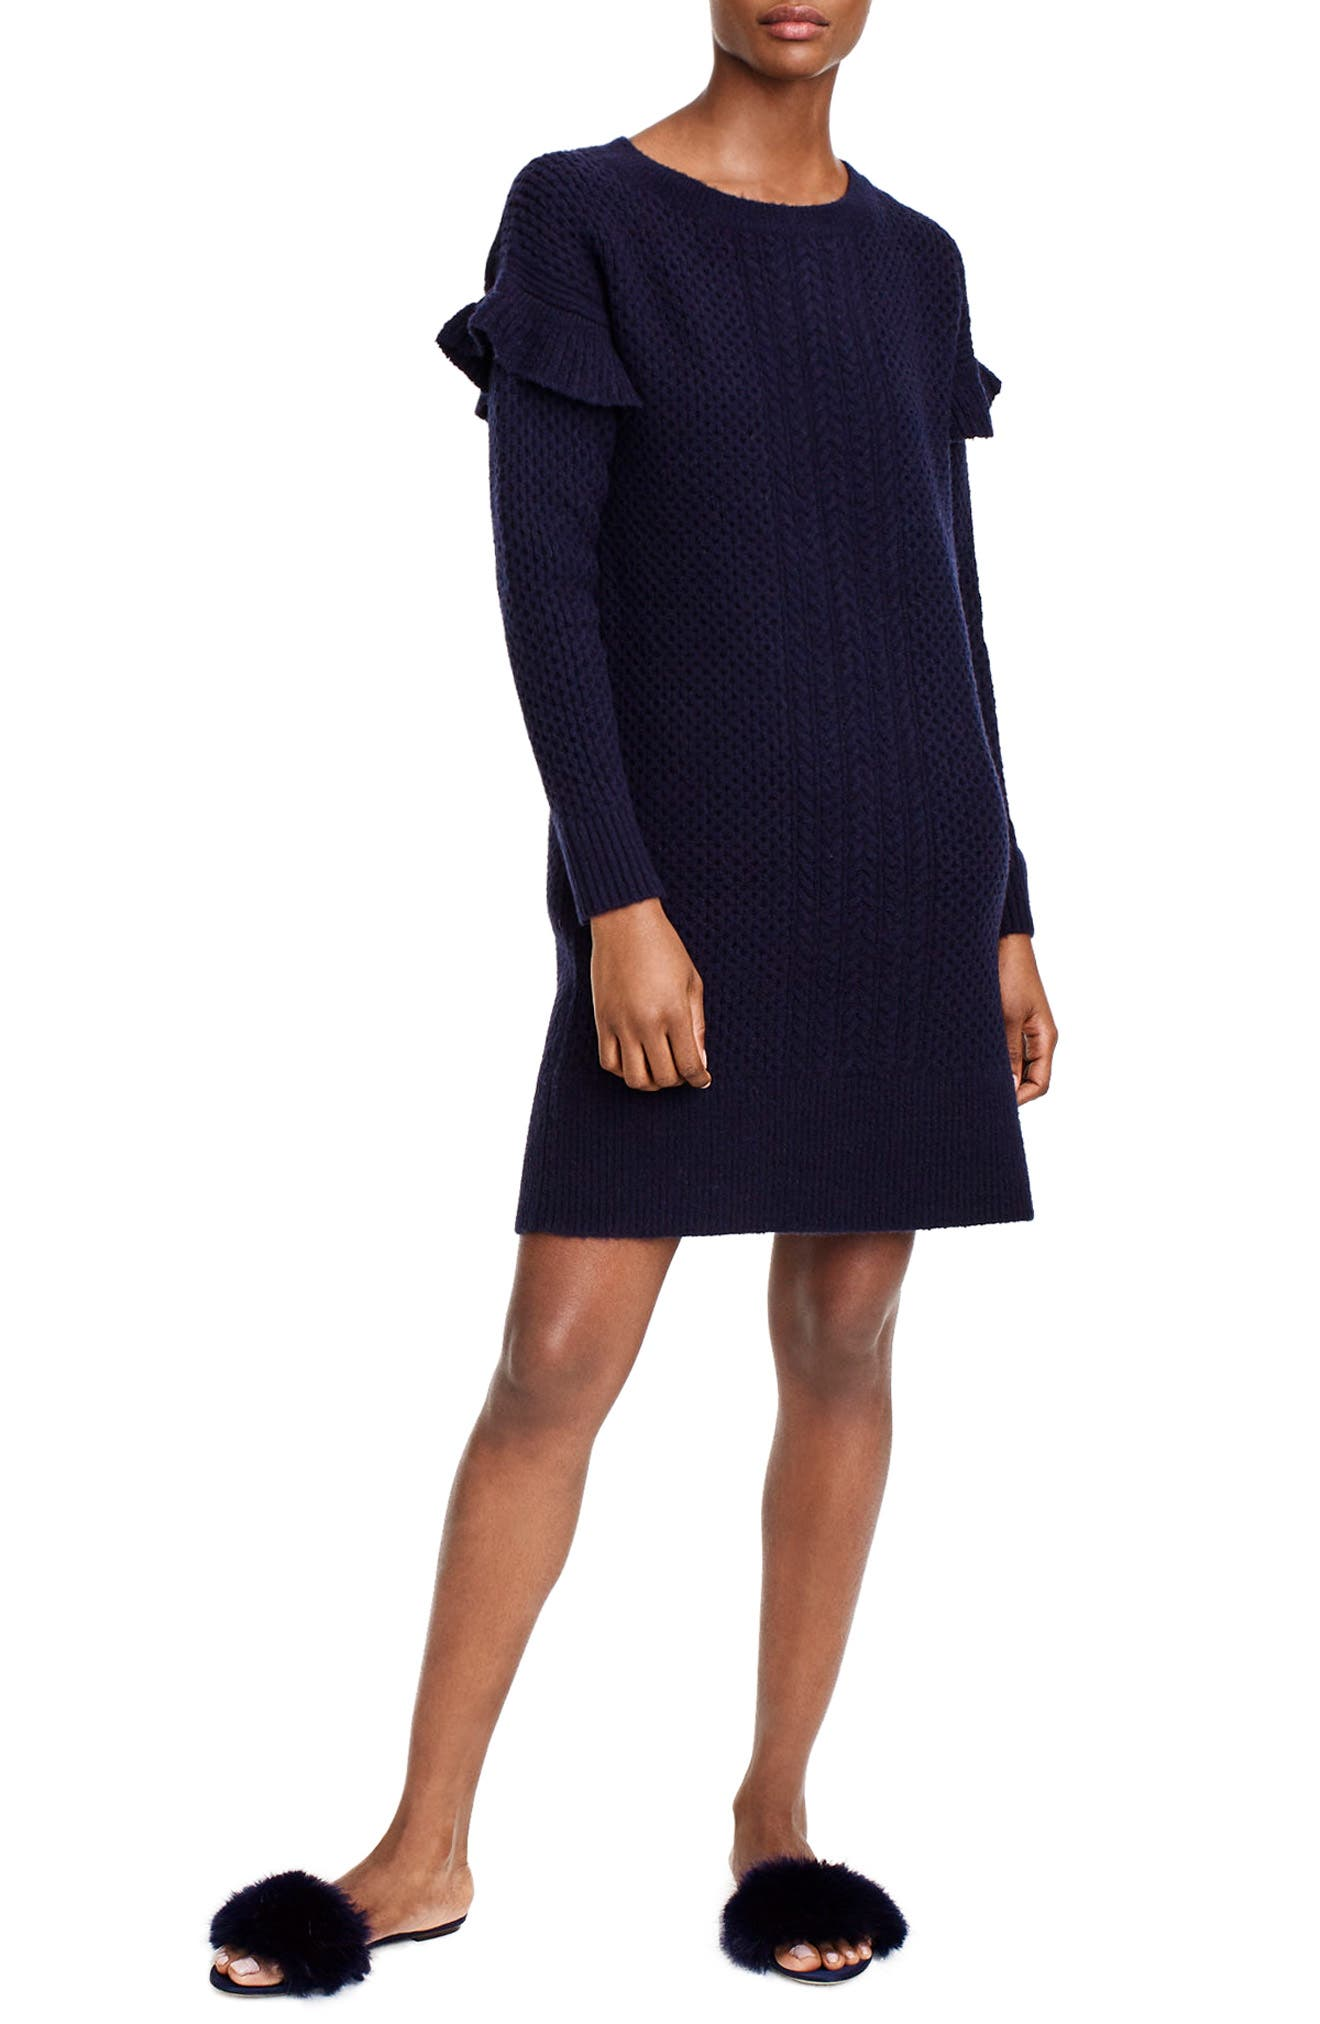 Holden Ruffle Sleeve Cable Knit Sweater Dress,                             Main thumbnail 1, color,                             Navy